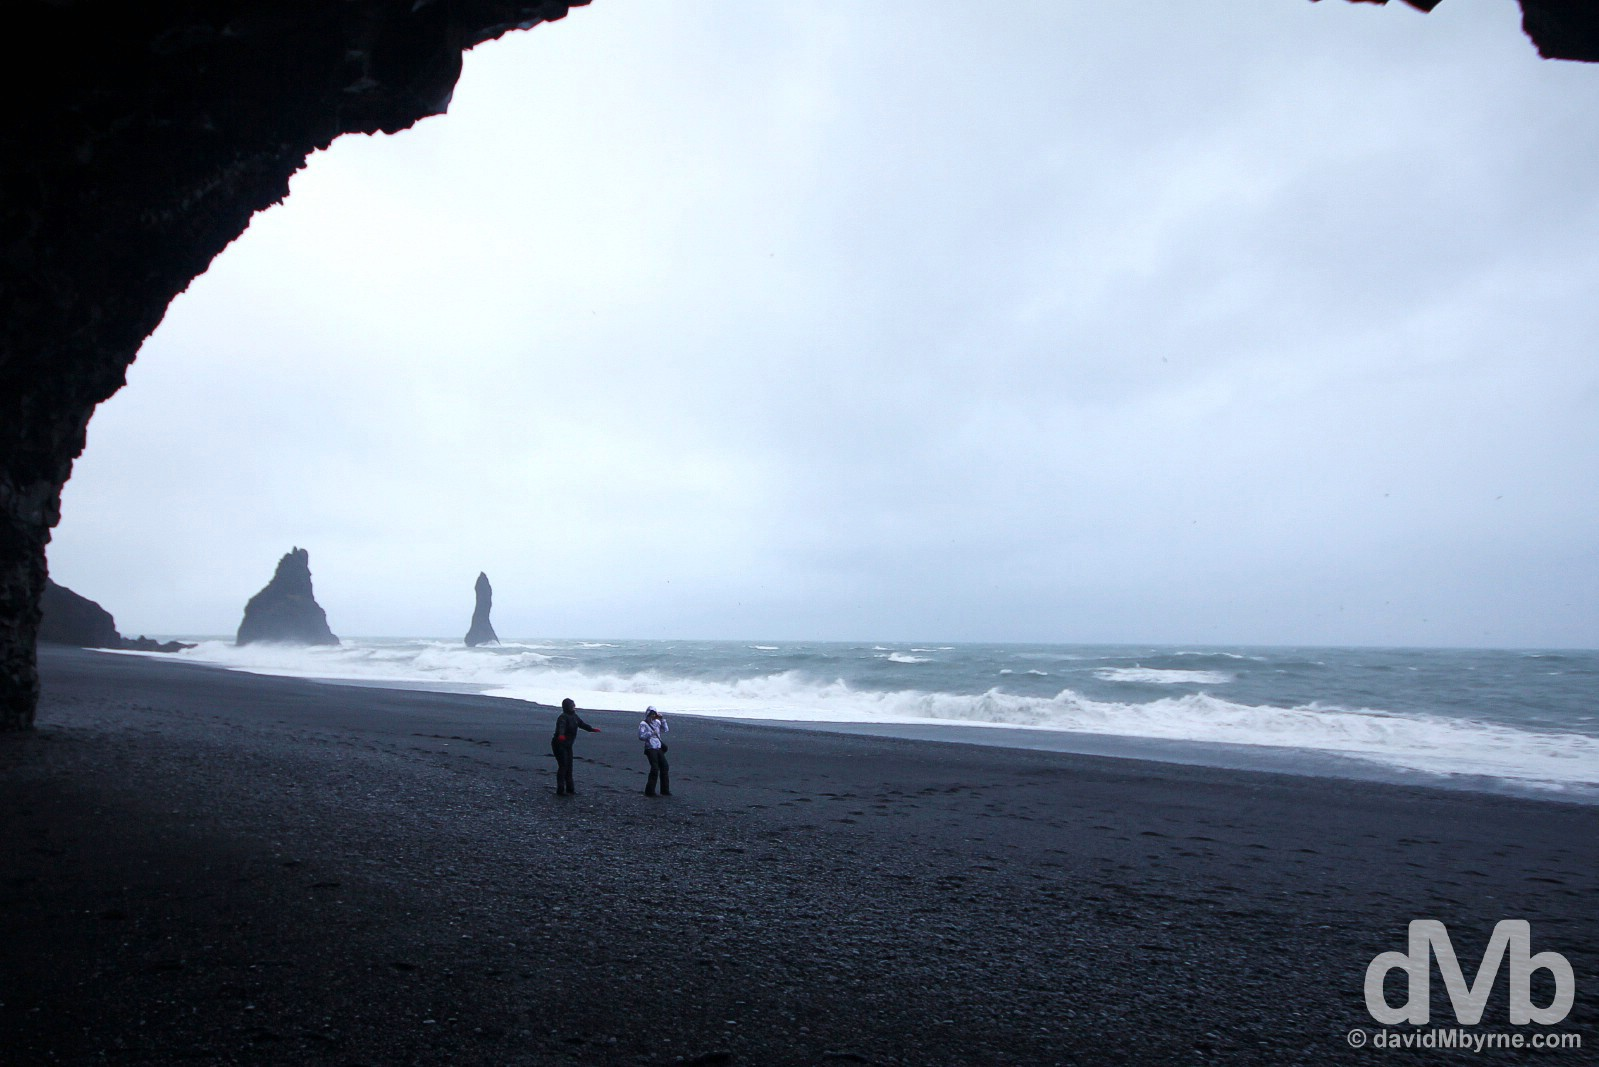 Braving the elements on the black sand beach at the base of the hill Reynisfjall in Myrdalur, southern Iceland. December 5, 2012.